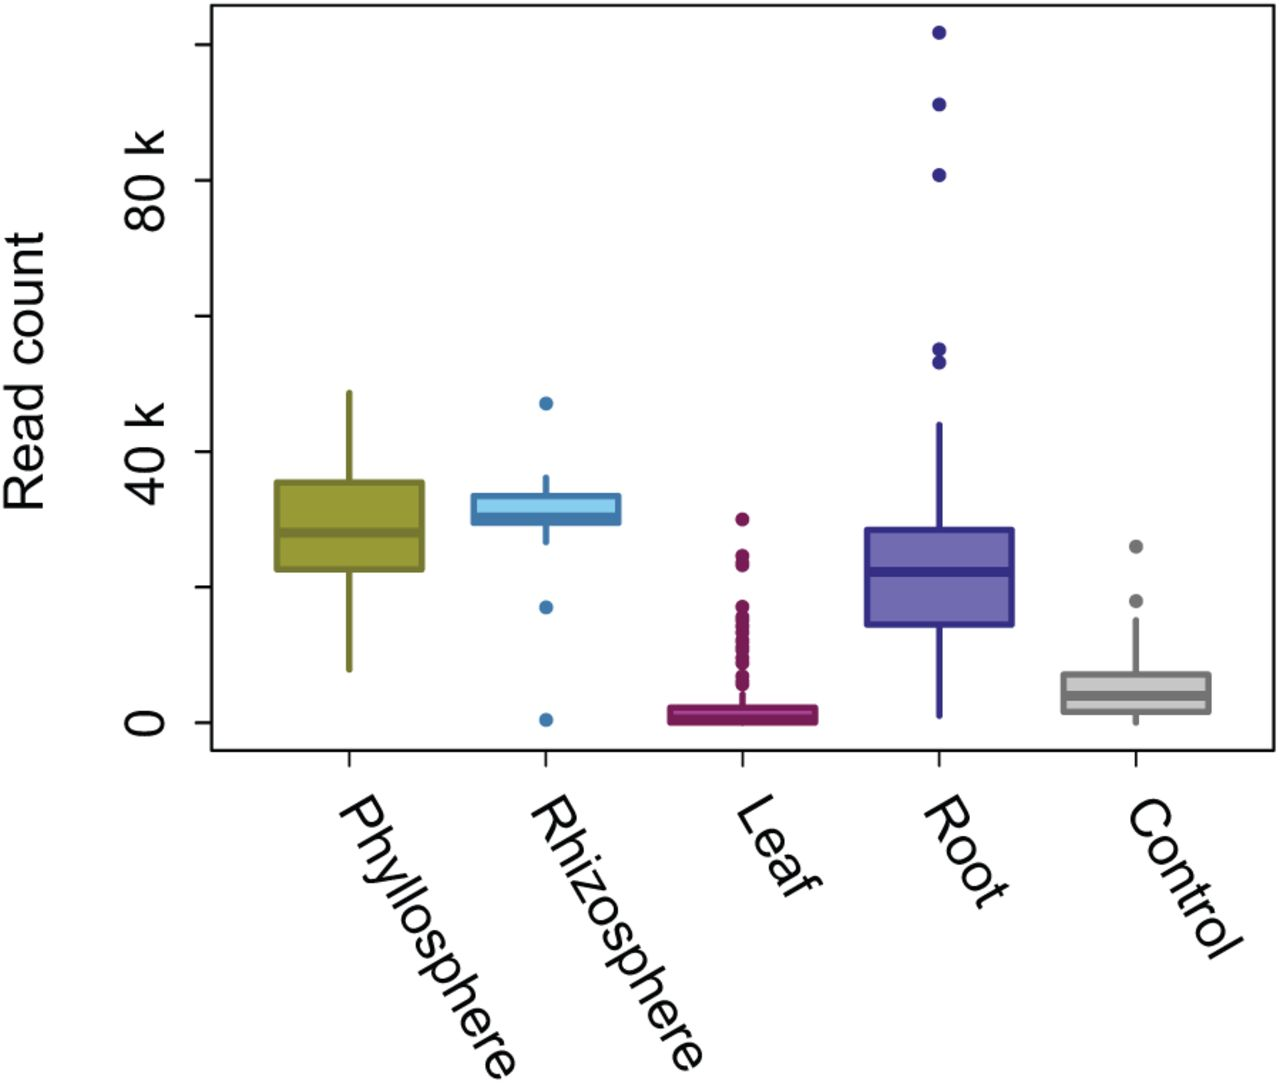 Escape from bacterial diversity: potential enemy release in